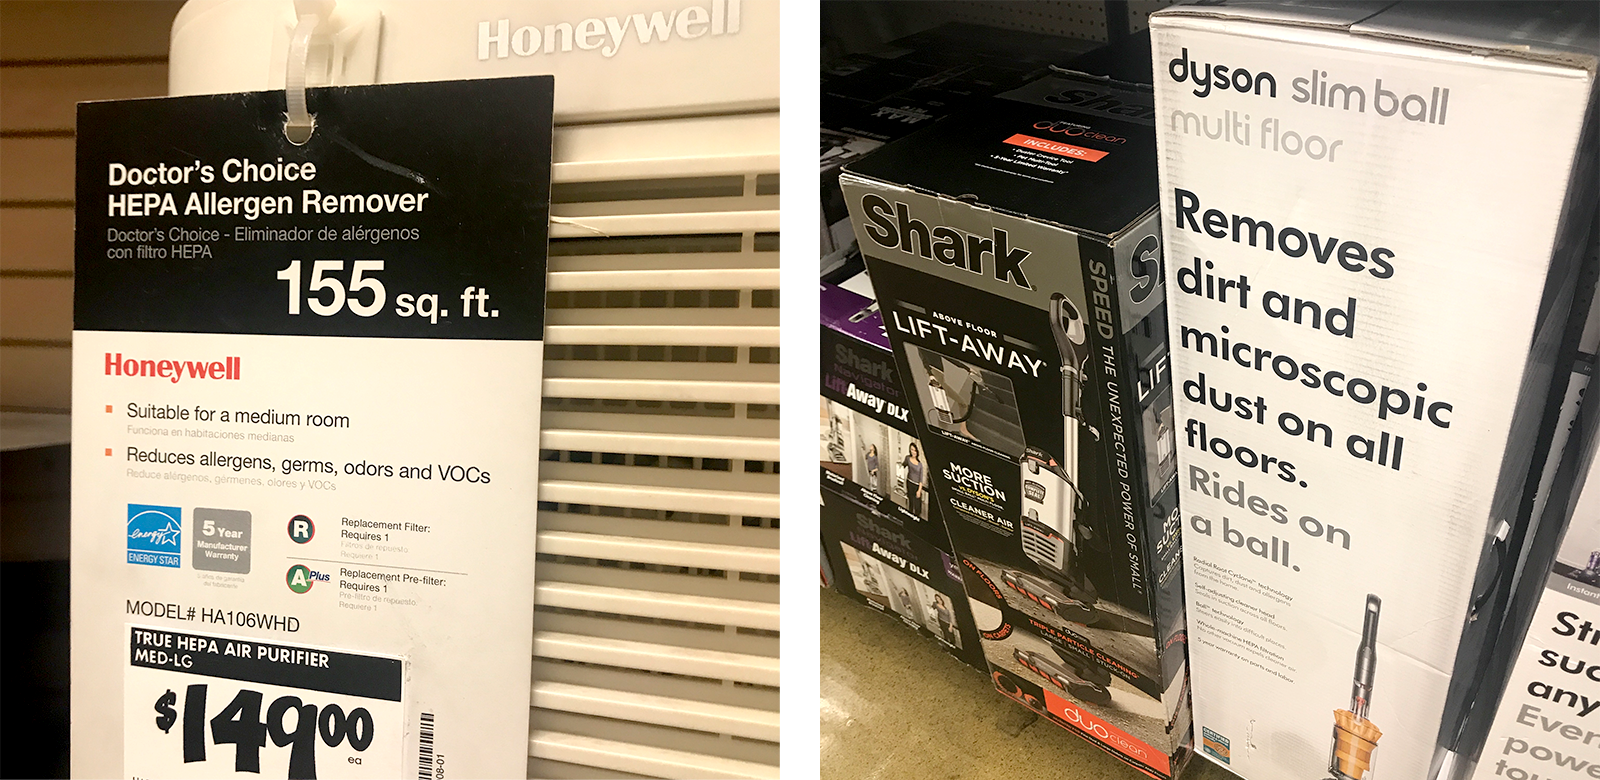 home-depot-honeywell-purifier-shark-shelving-1